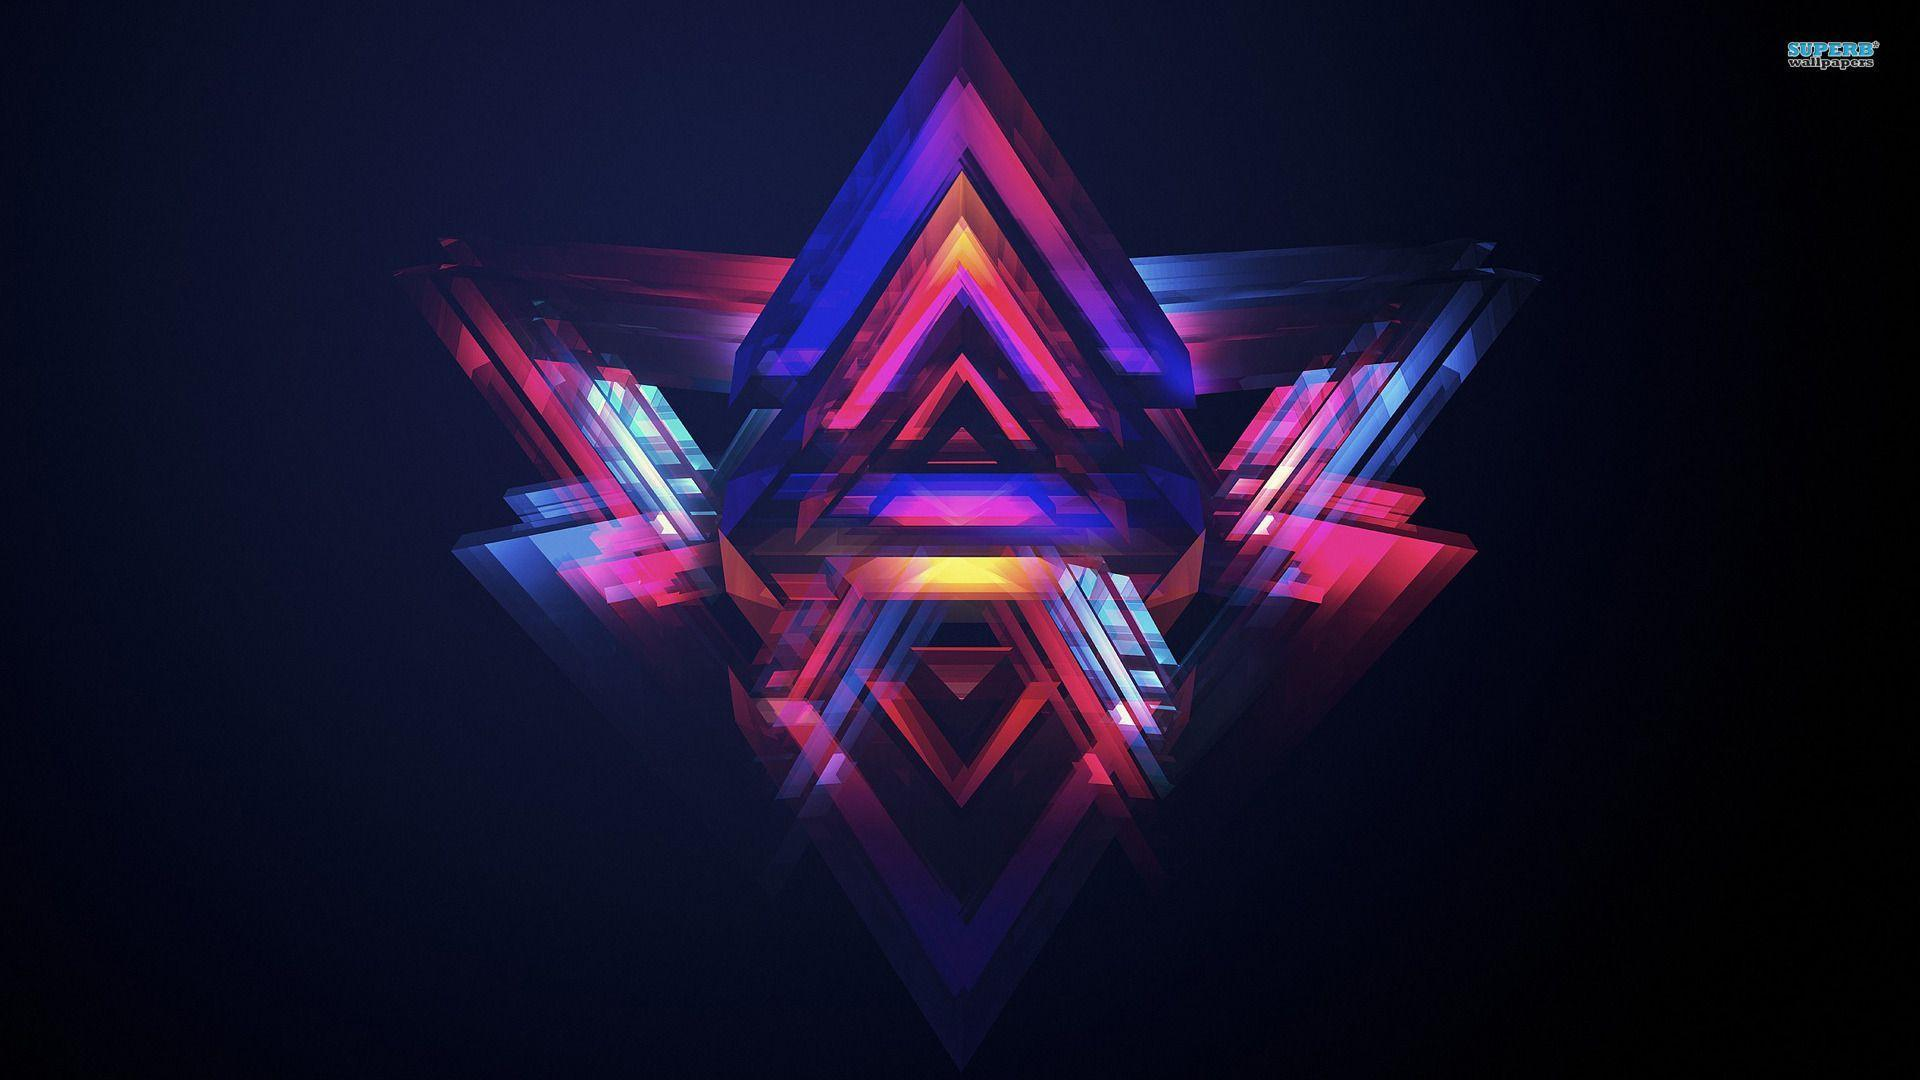 triangle abstract wallpapers hd - photo #32